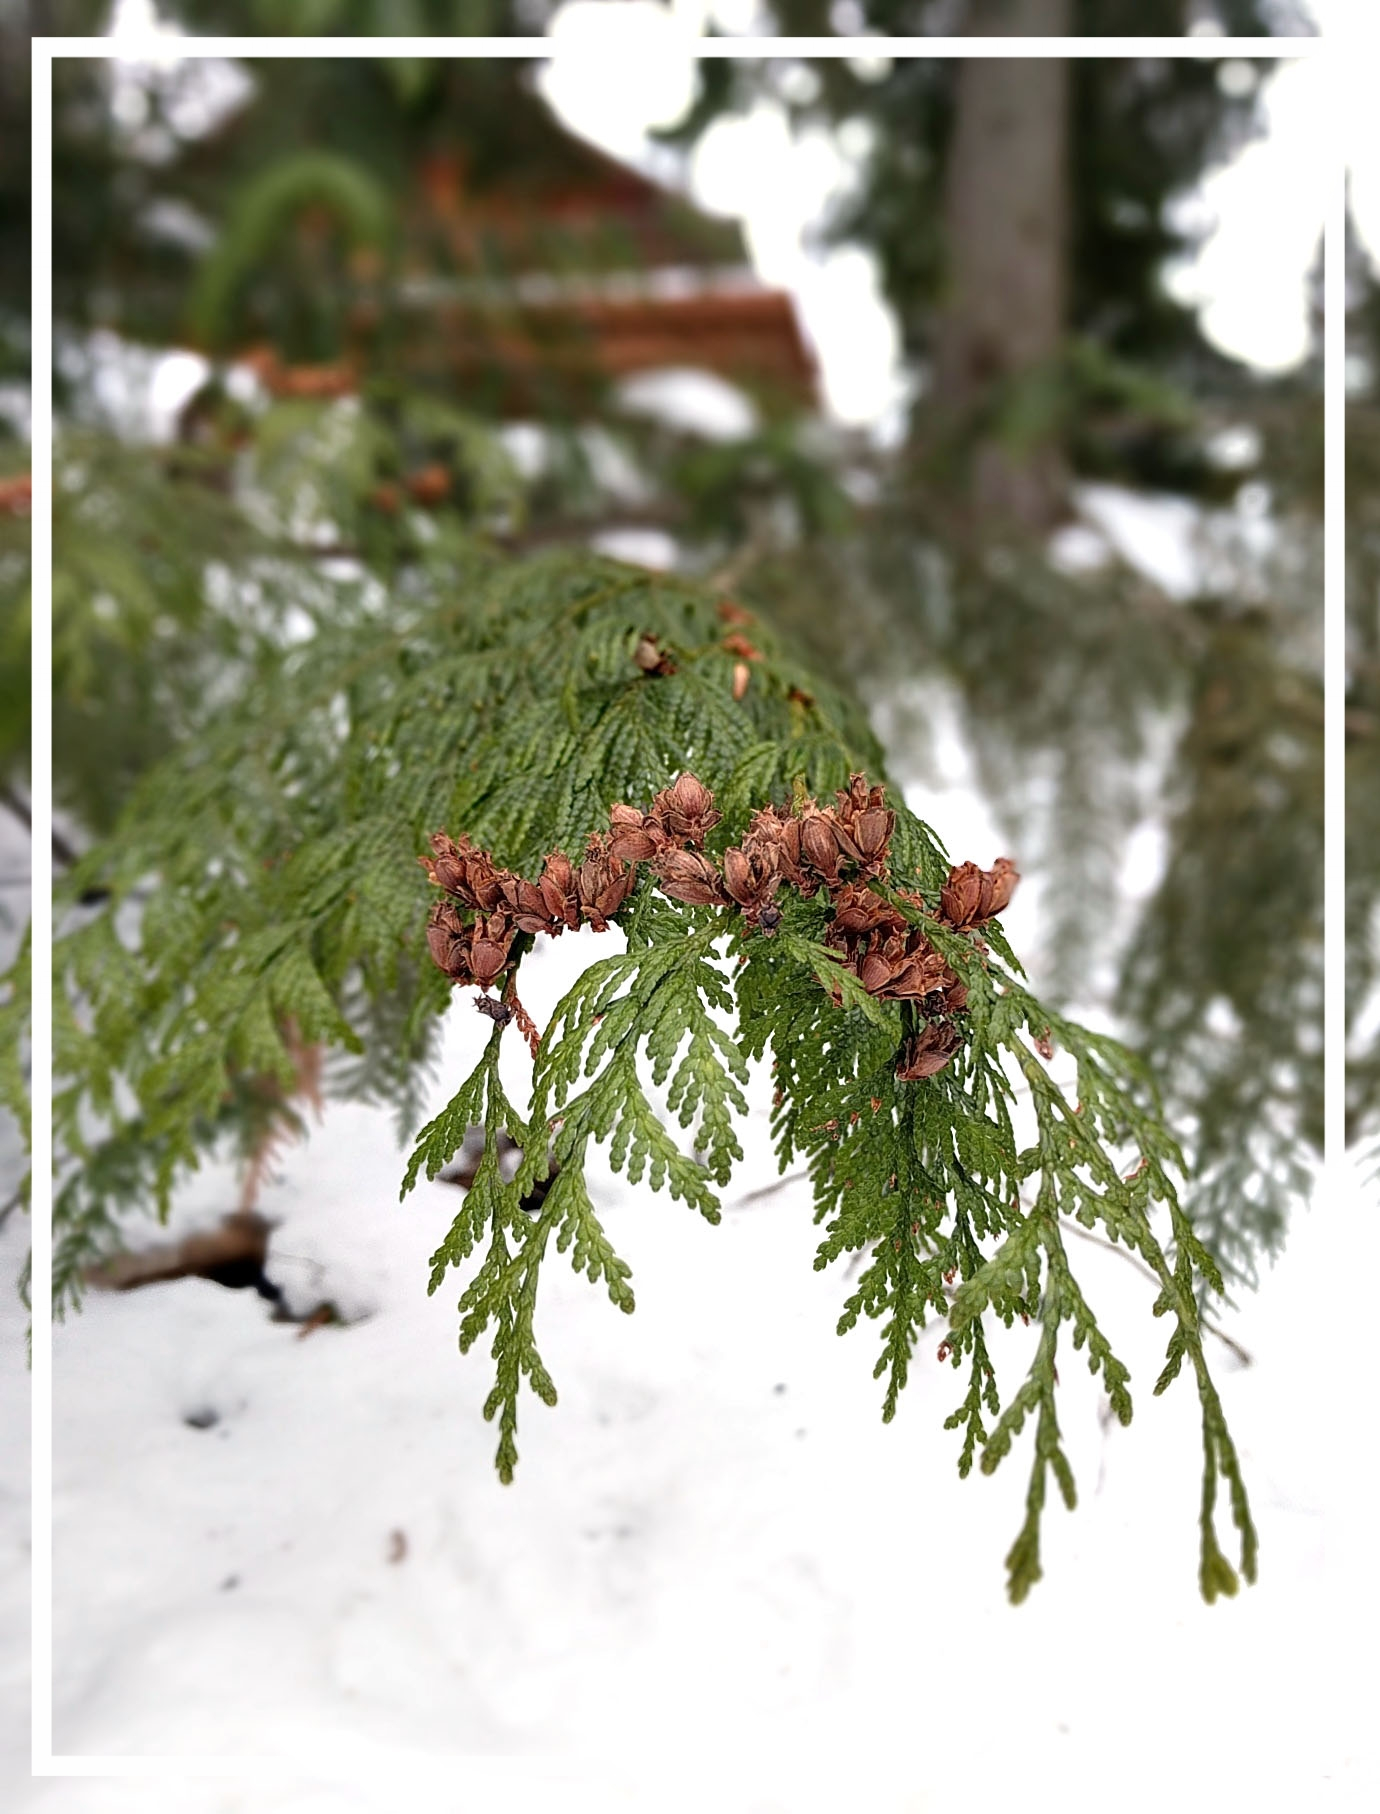 The small cones of western red cedar hold seeds for a wintertime snack.